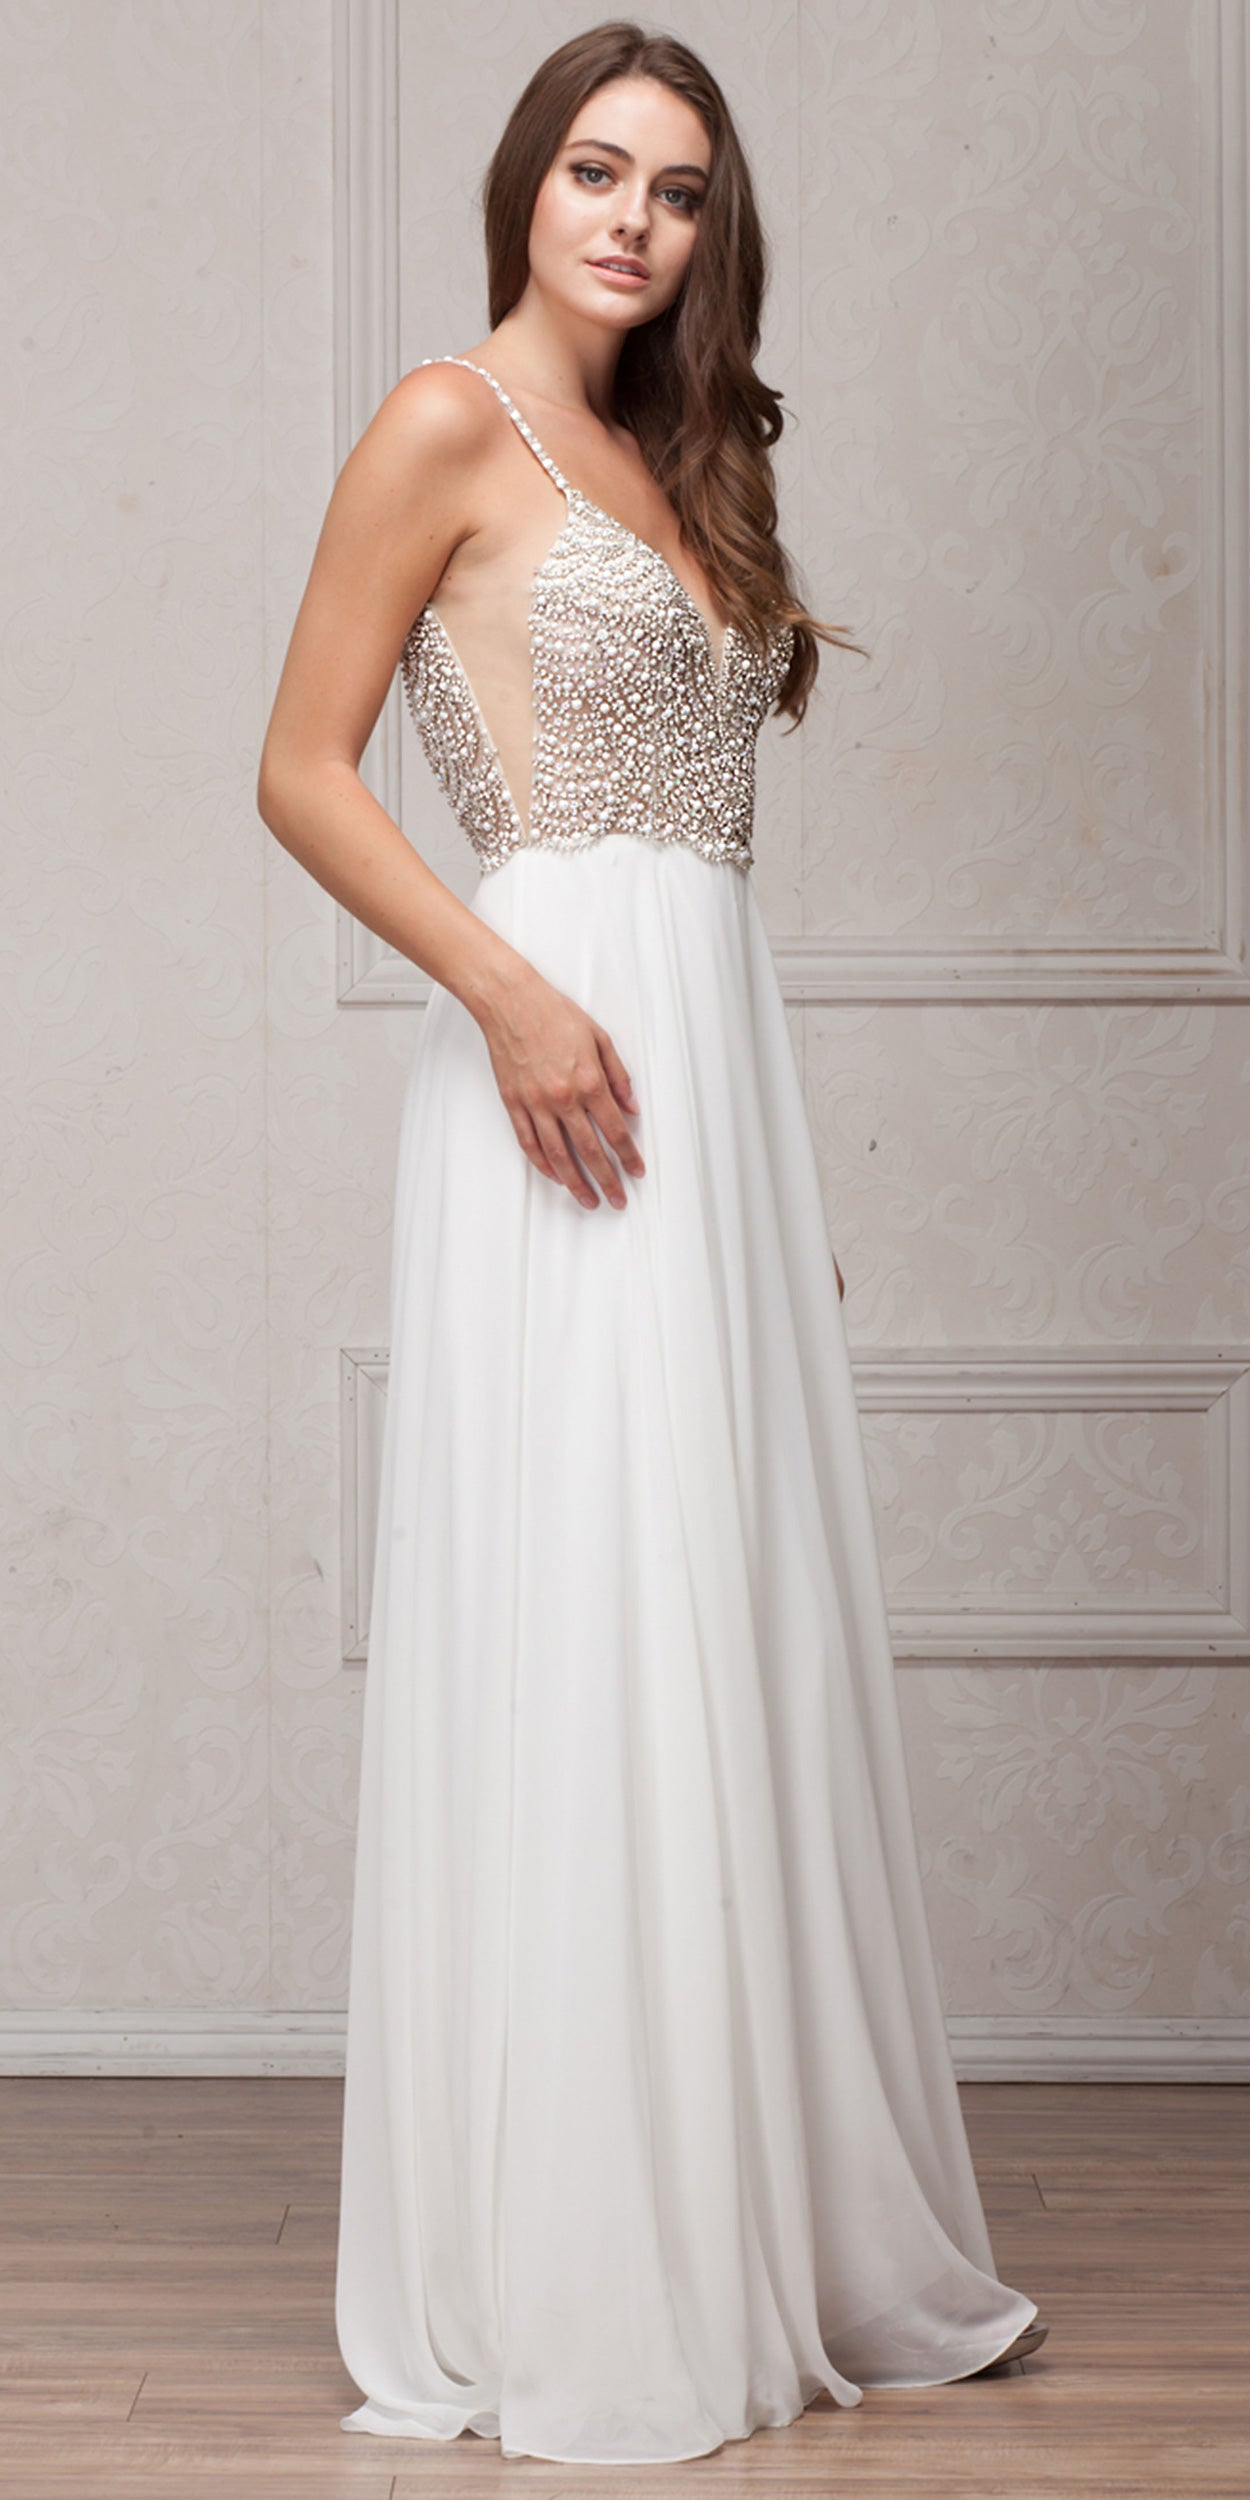 Image of Bejeweled Bodice V-neck Spaghetti Straps Formal Prom Dress in an alternative image